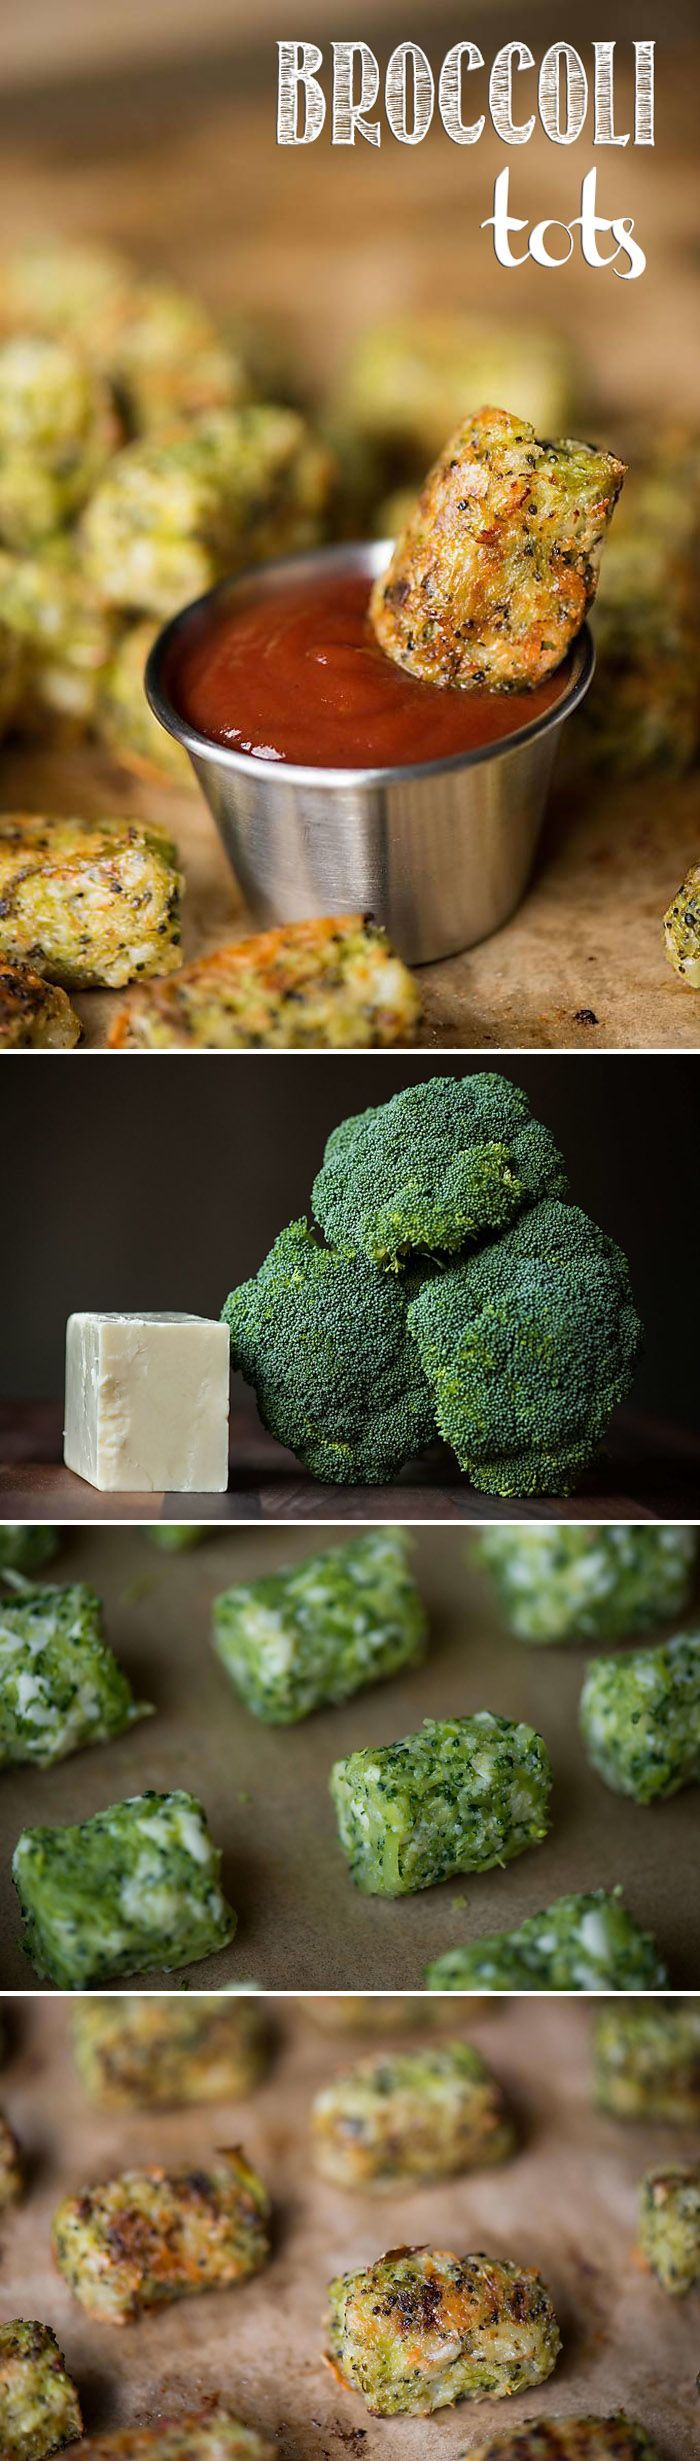 Since broccoli and cheese are one of life's great pairings, combine them into one low carb appetizer like these tasty Broccoli Tots! #broccoli #lowcarb #broccolitots